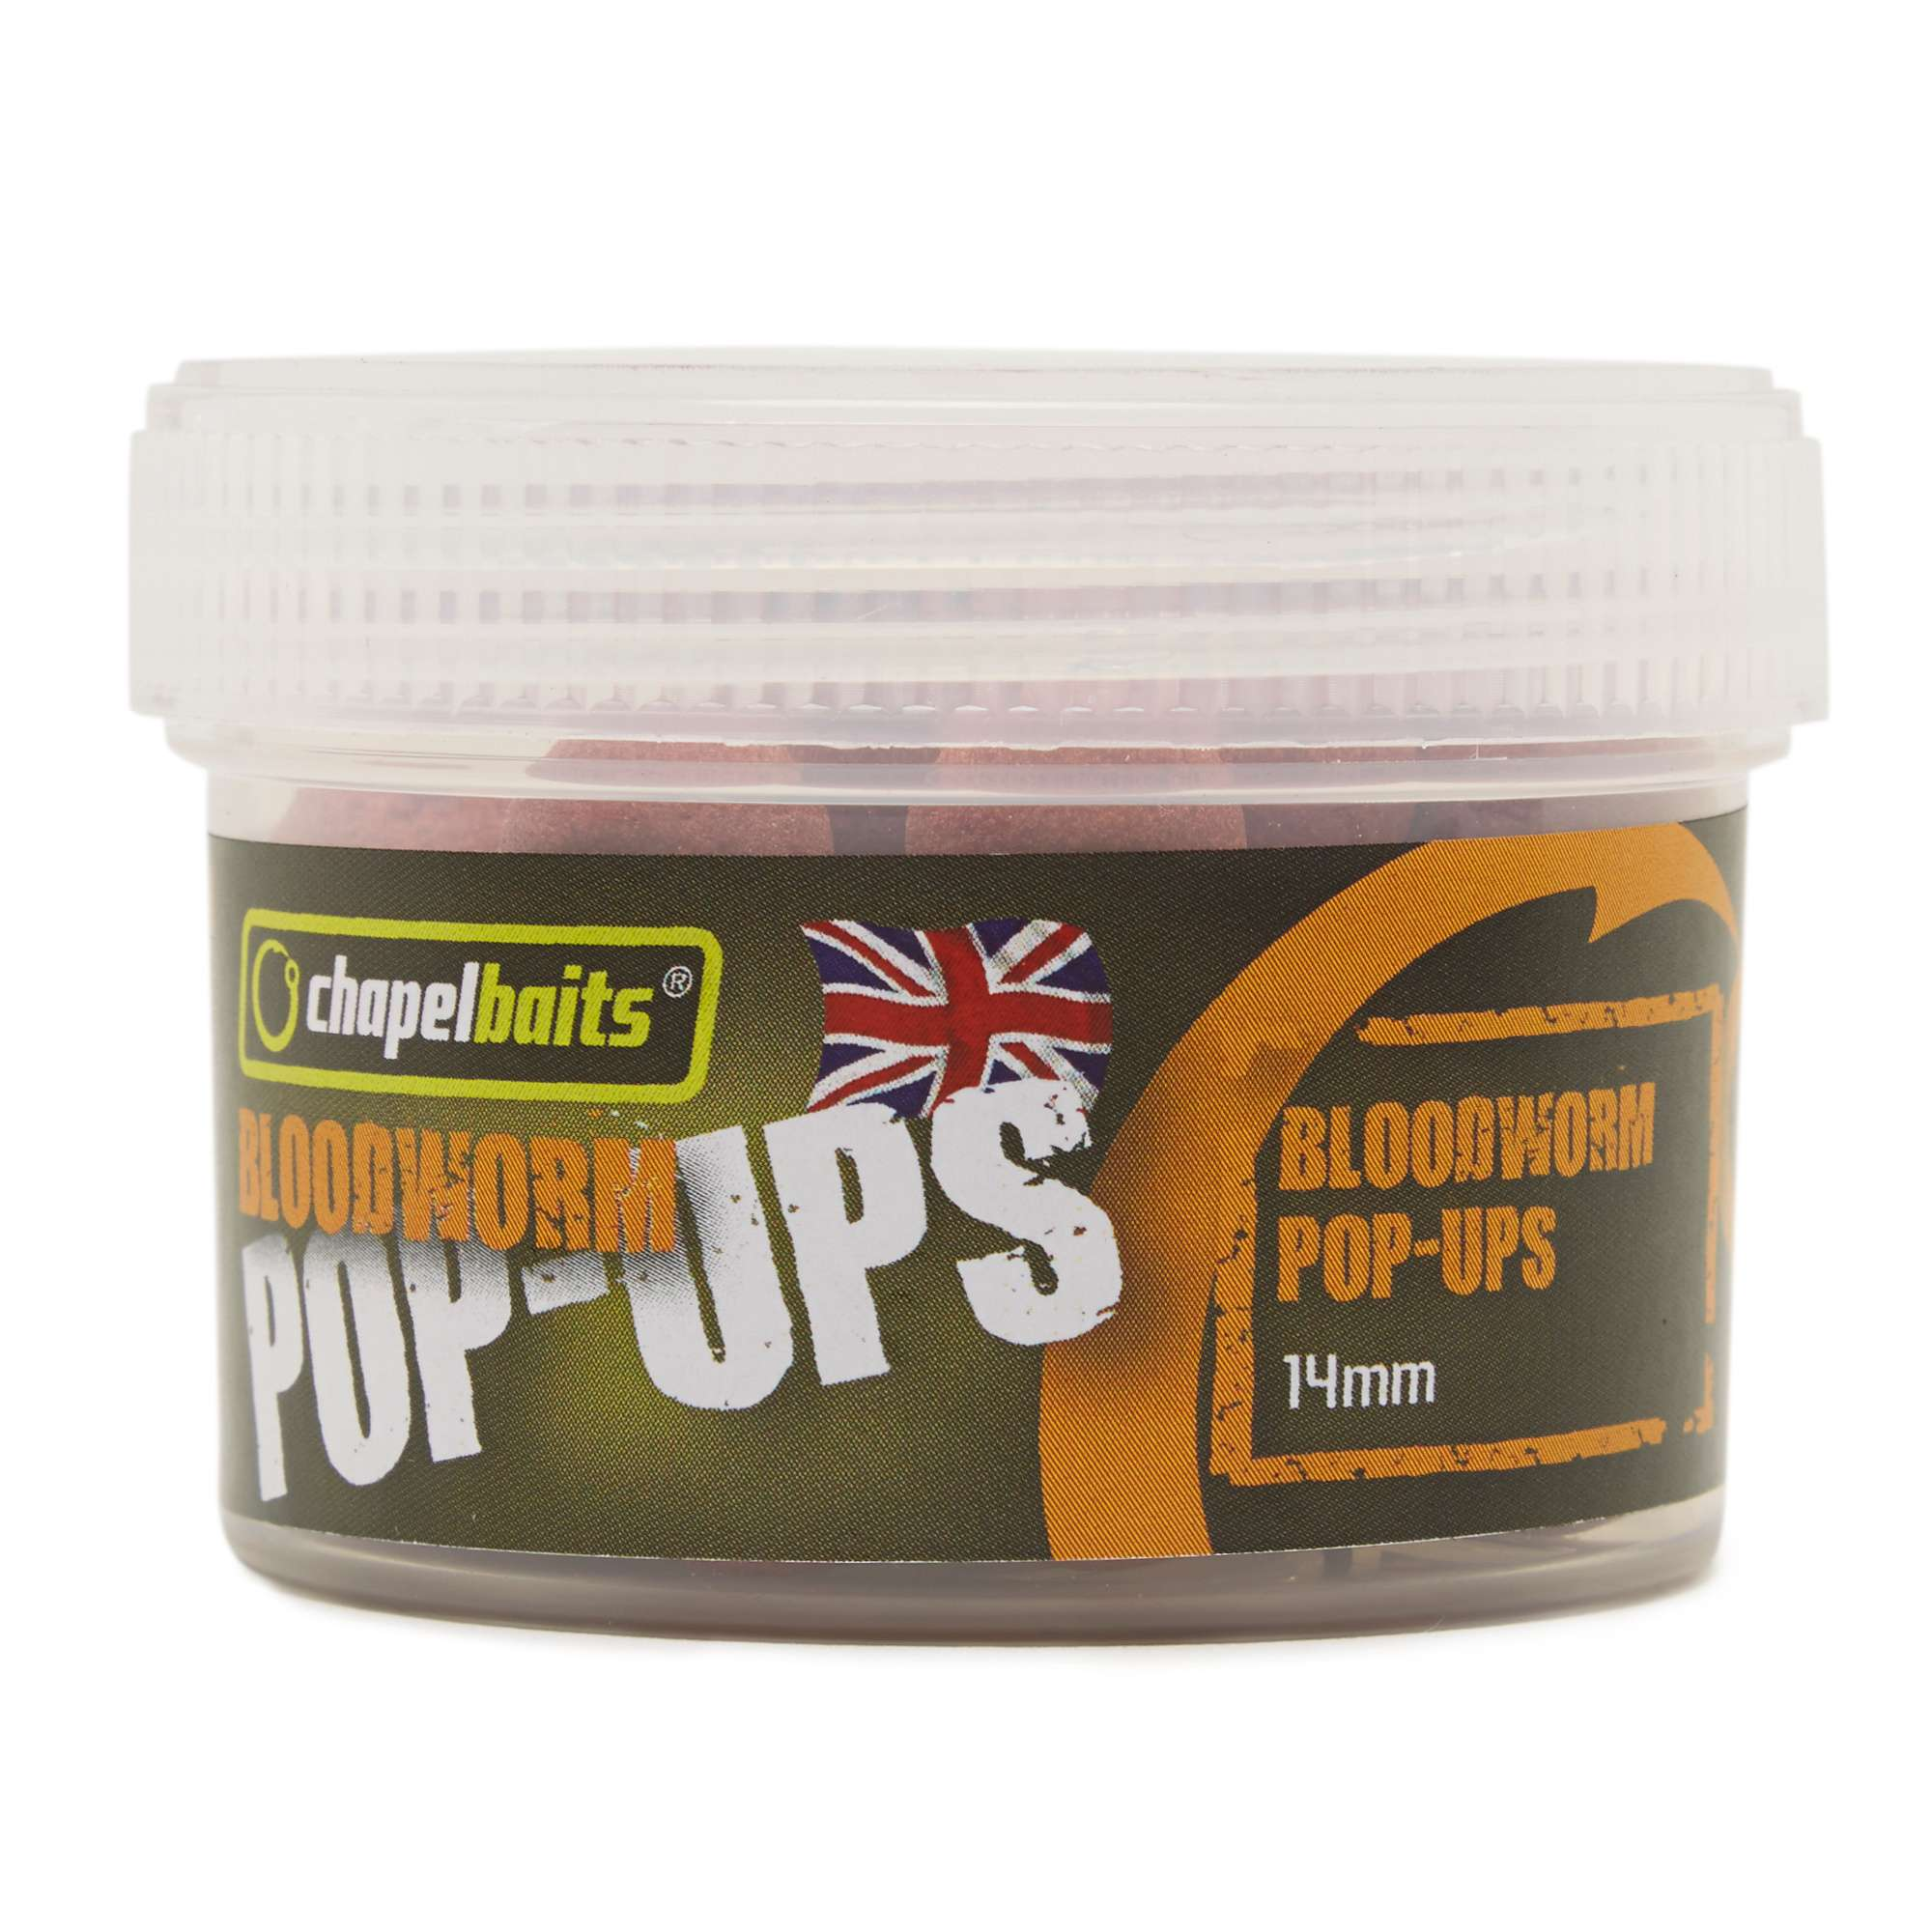 CHAPEL BAITS Bloodworm Pop-Ups Session Pack, 14mm